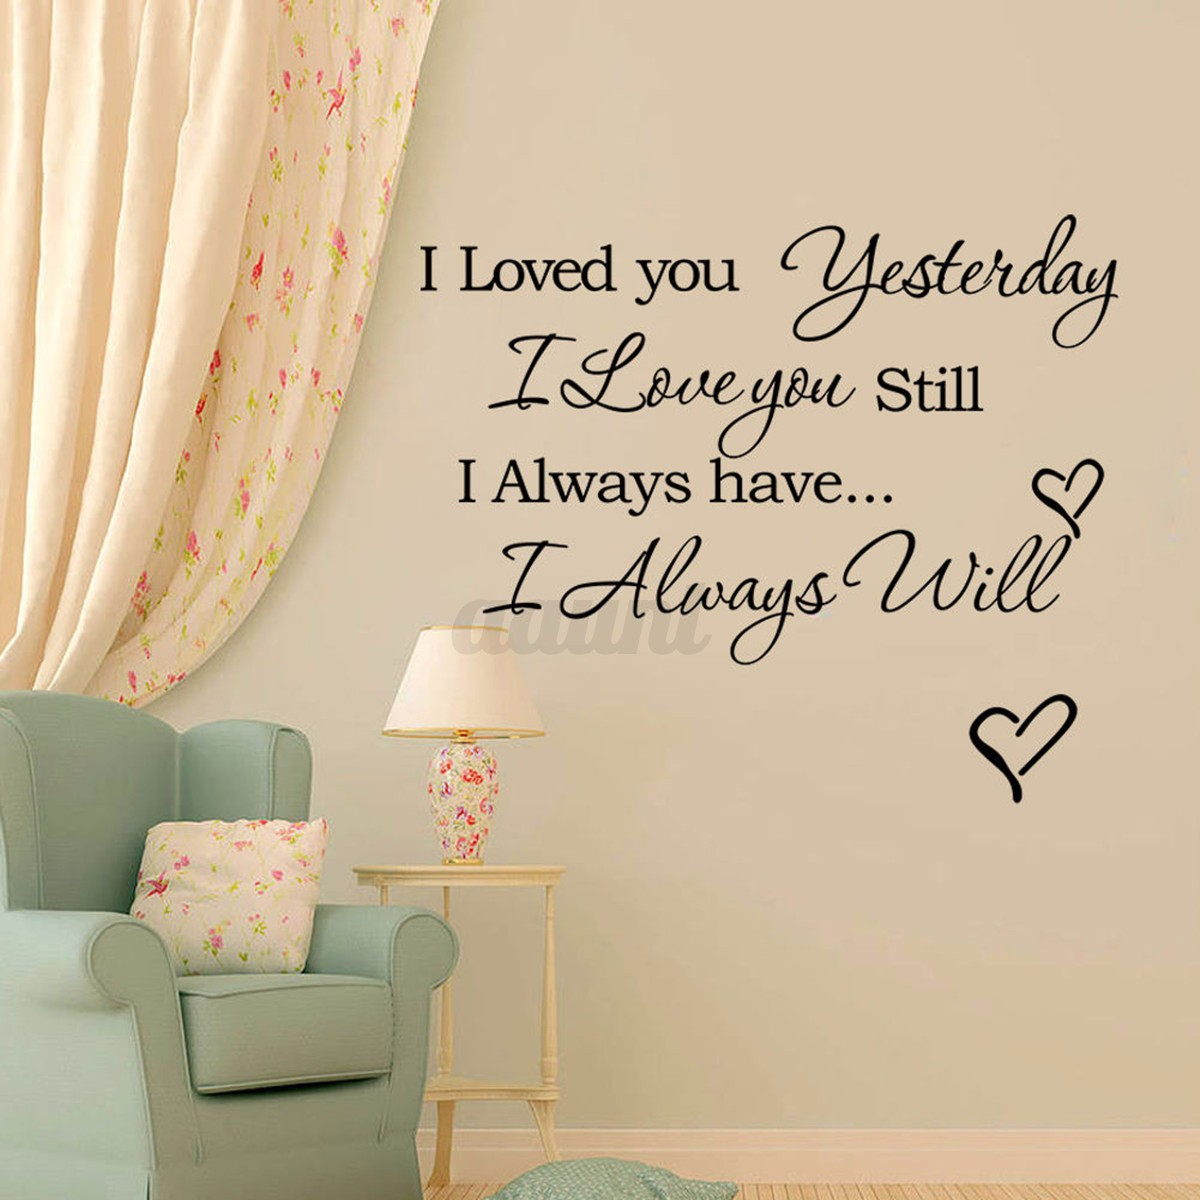 Removable Family Art Vinyl Quote Wall Stickers Decal Mural